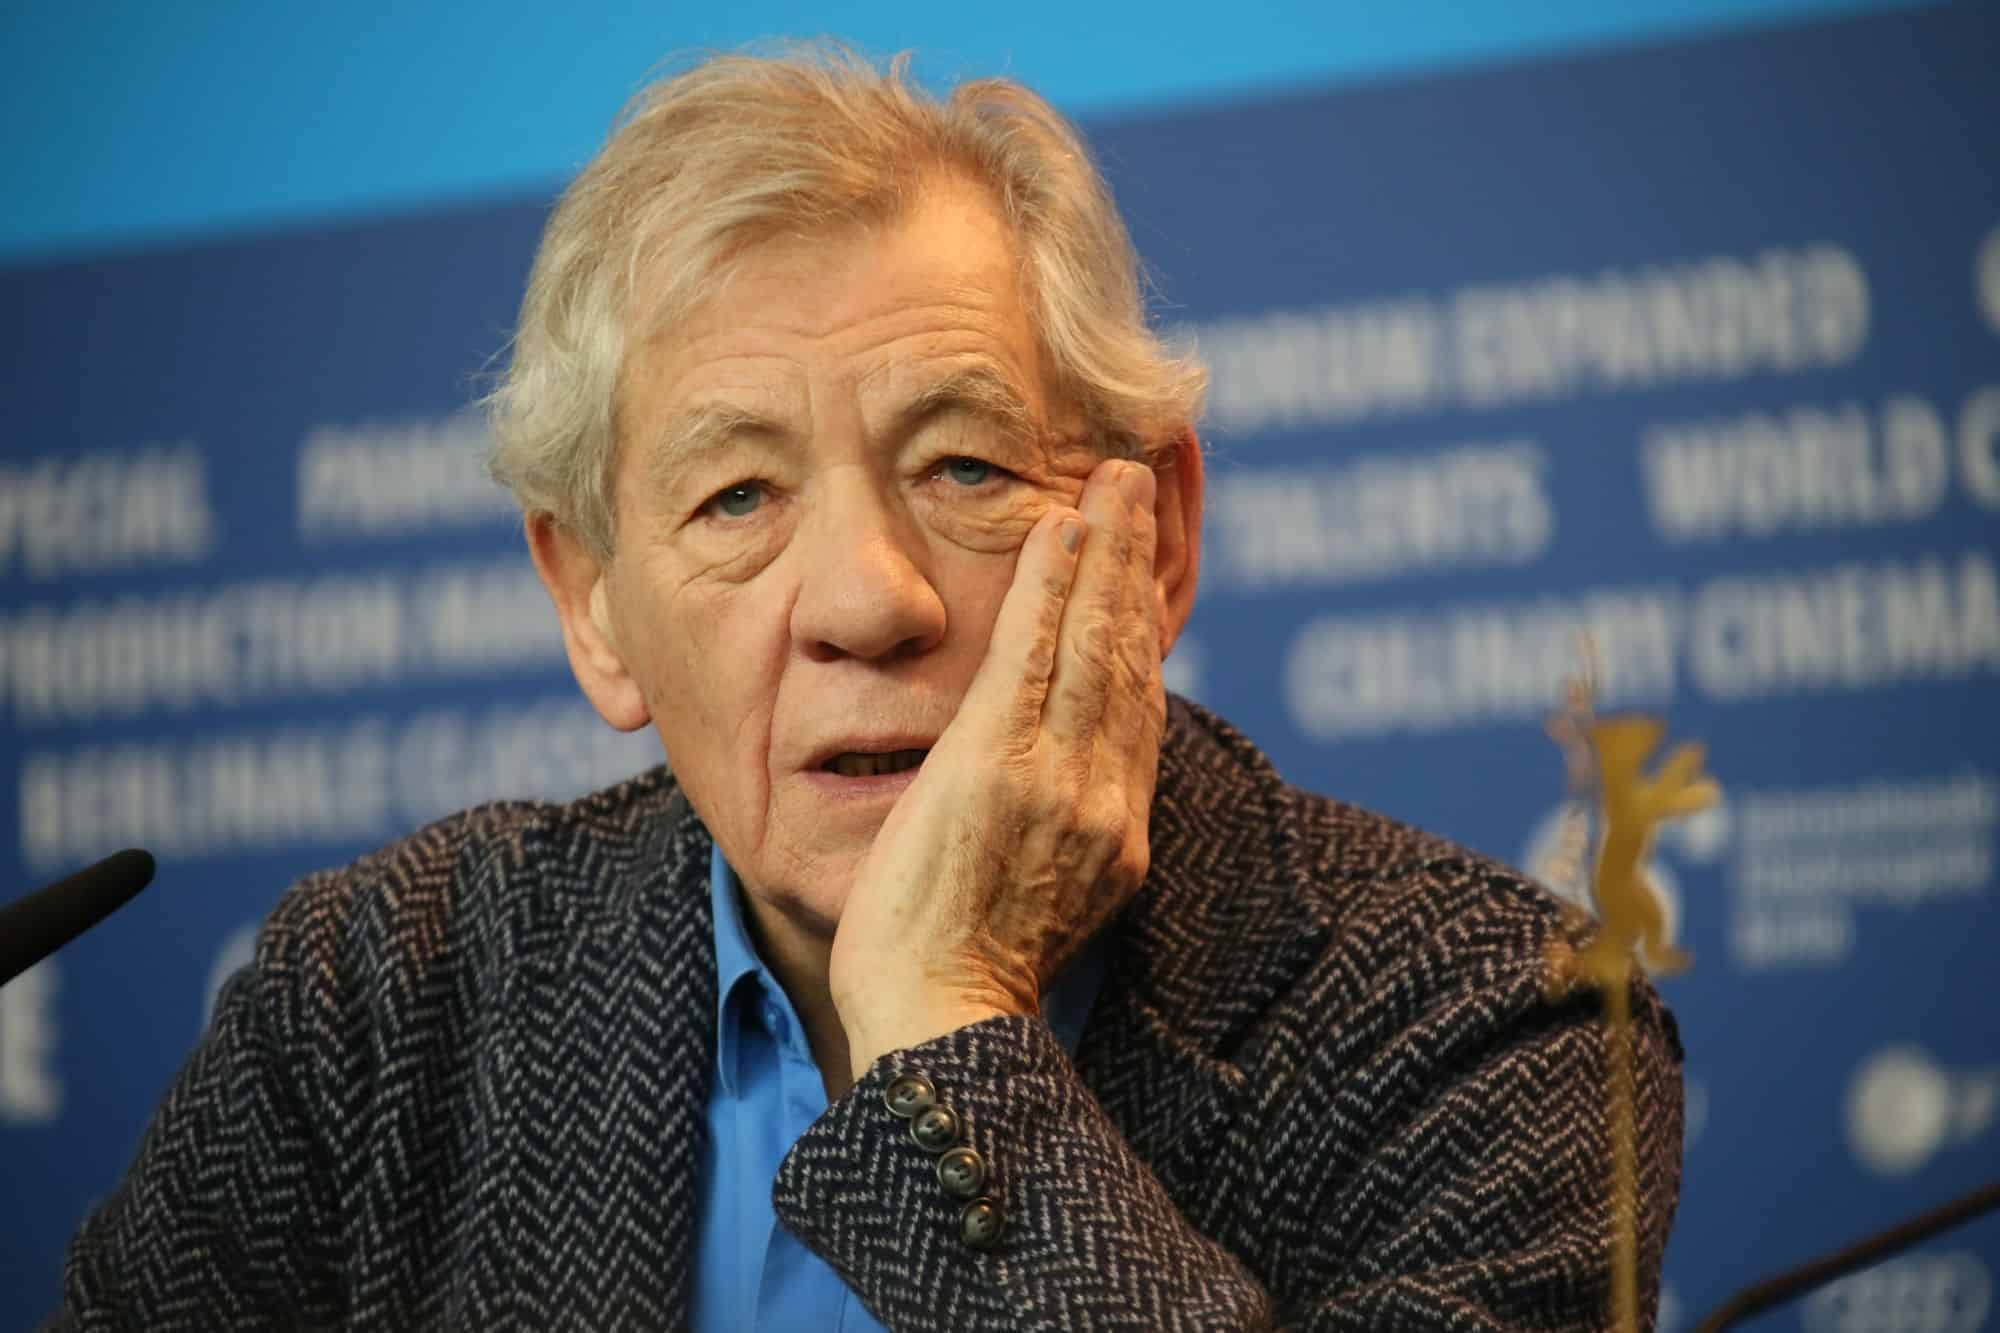 Ian McKellen Clarifies His Position on the Allegations Against Bryan Singer